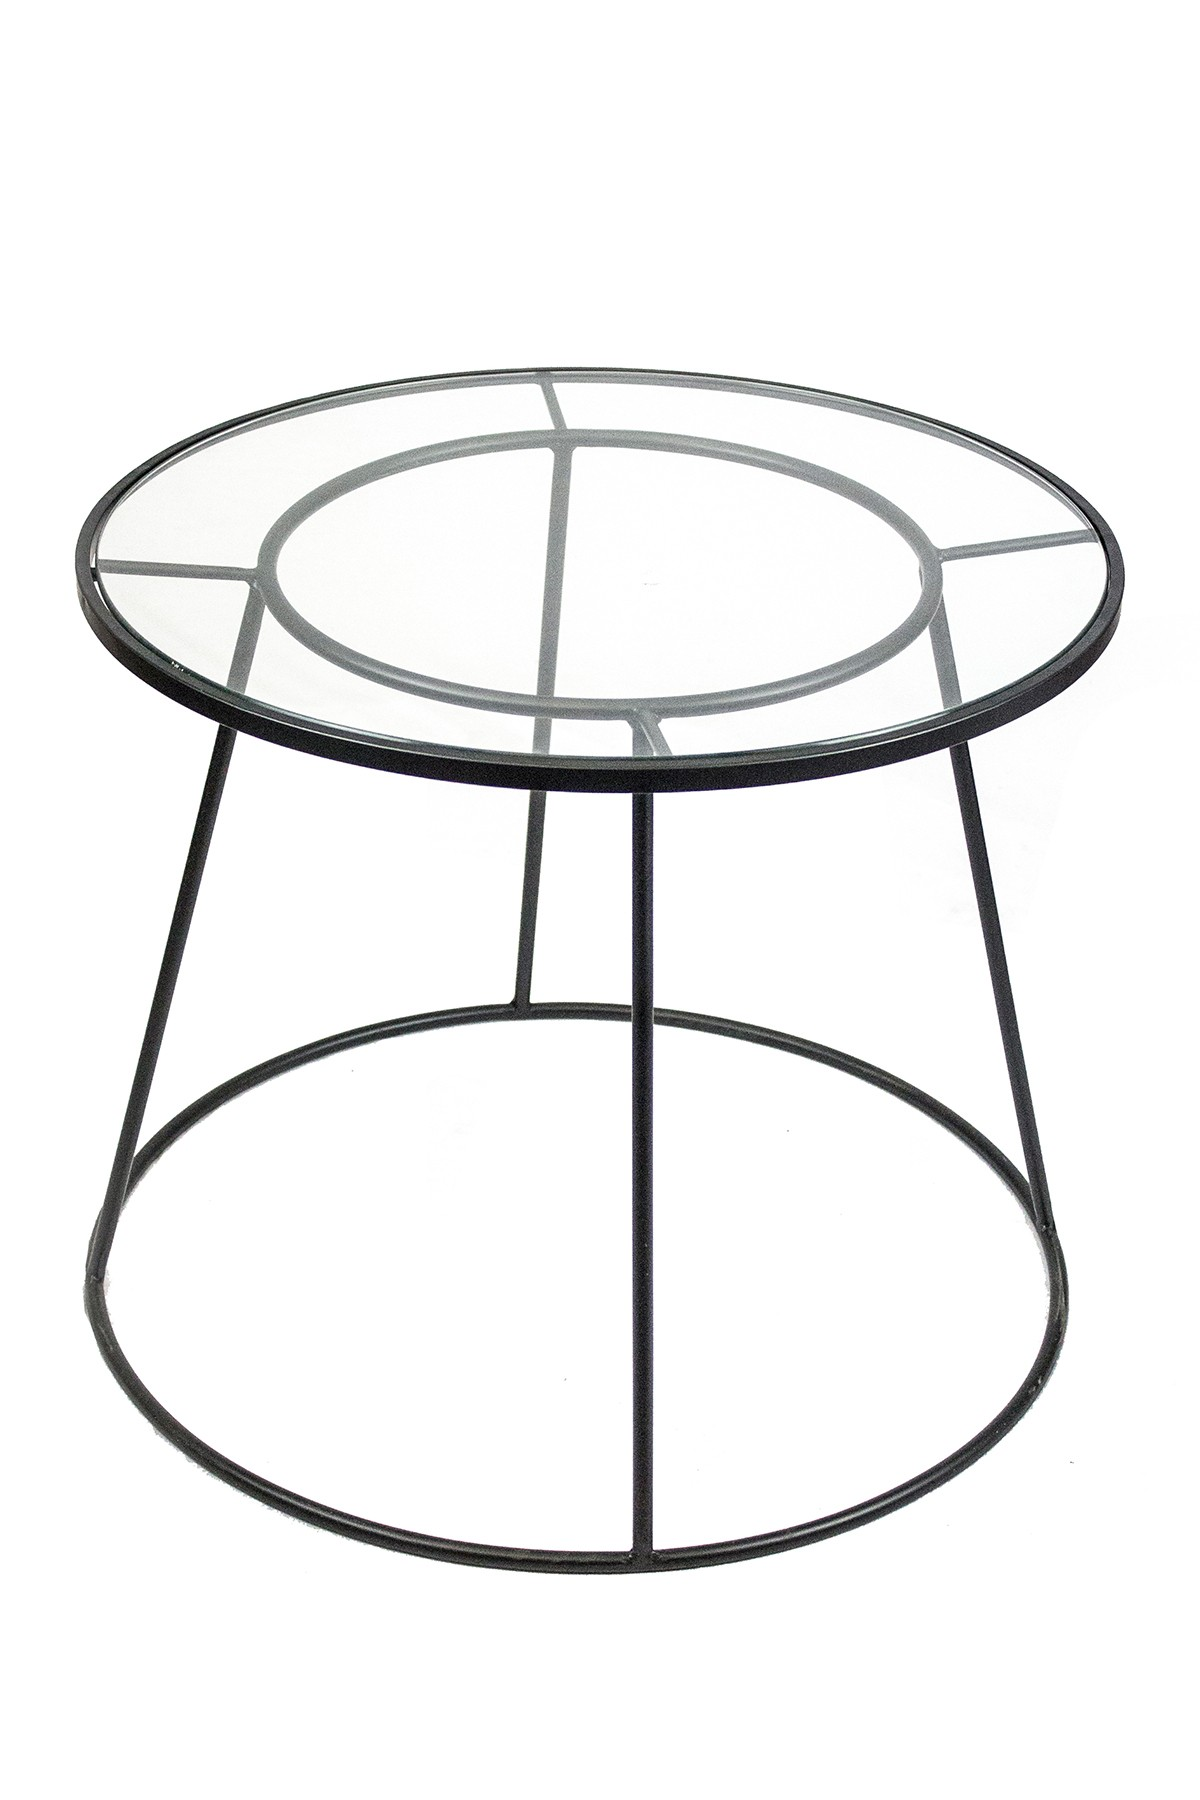 sagebrook home black metal glass accent table nordstrom rack lucite dining room outdoor umbrella stand weights pine bedside tables solid wood coffee hampton bay wicker patio